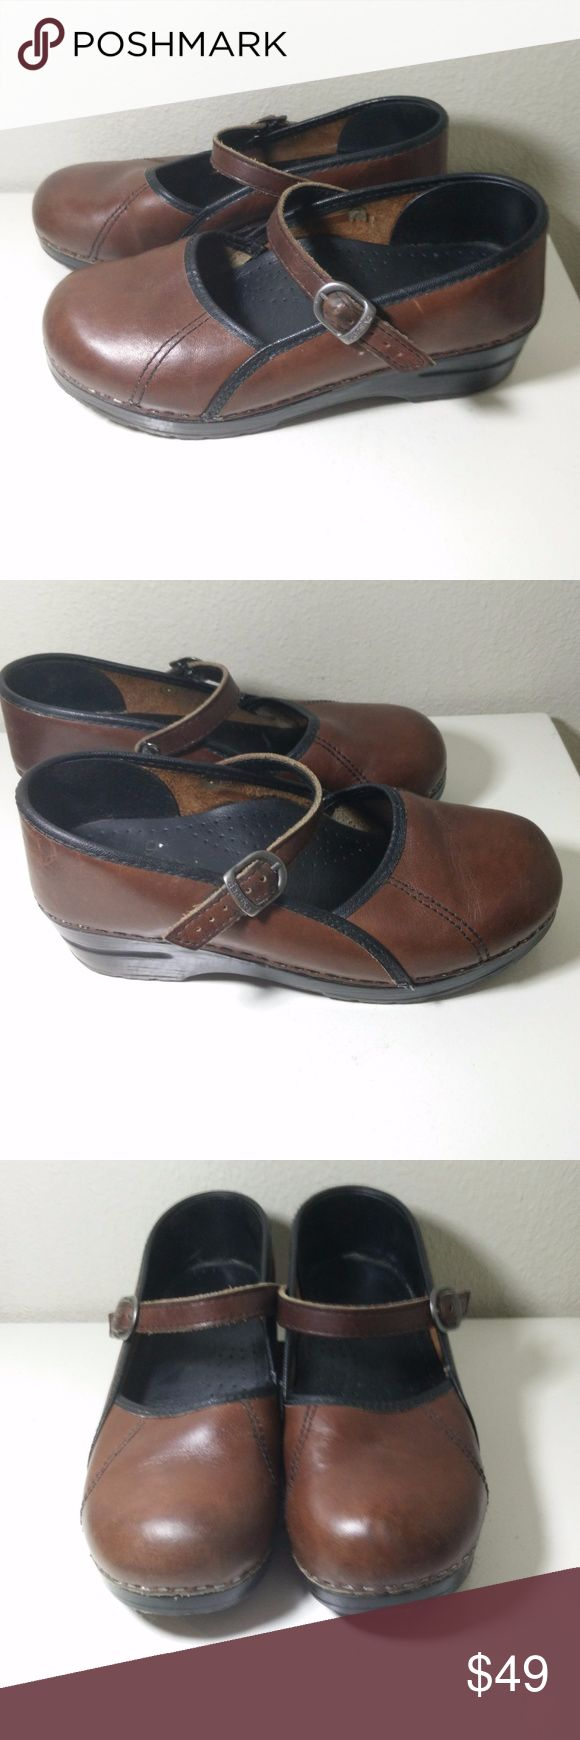 DANSKO Marah Mary Jane  Brown Leather Clogs  SZ 38 DANSKO Marah Mary Jane  Brown Leather Clogs Shoes EU Size 38/ US 7.5 - 8 -  Showing signs of wear and the odd scuff mark but still in GOOD overall condition with loads of wear still left in these shoes!  (ref#1852) Dansko Shoes Mules & Clogs